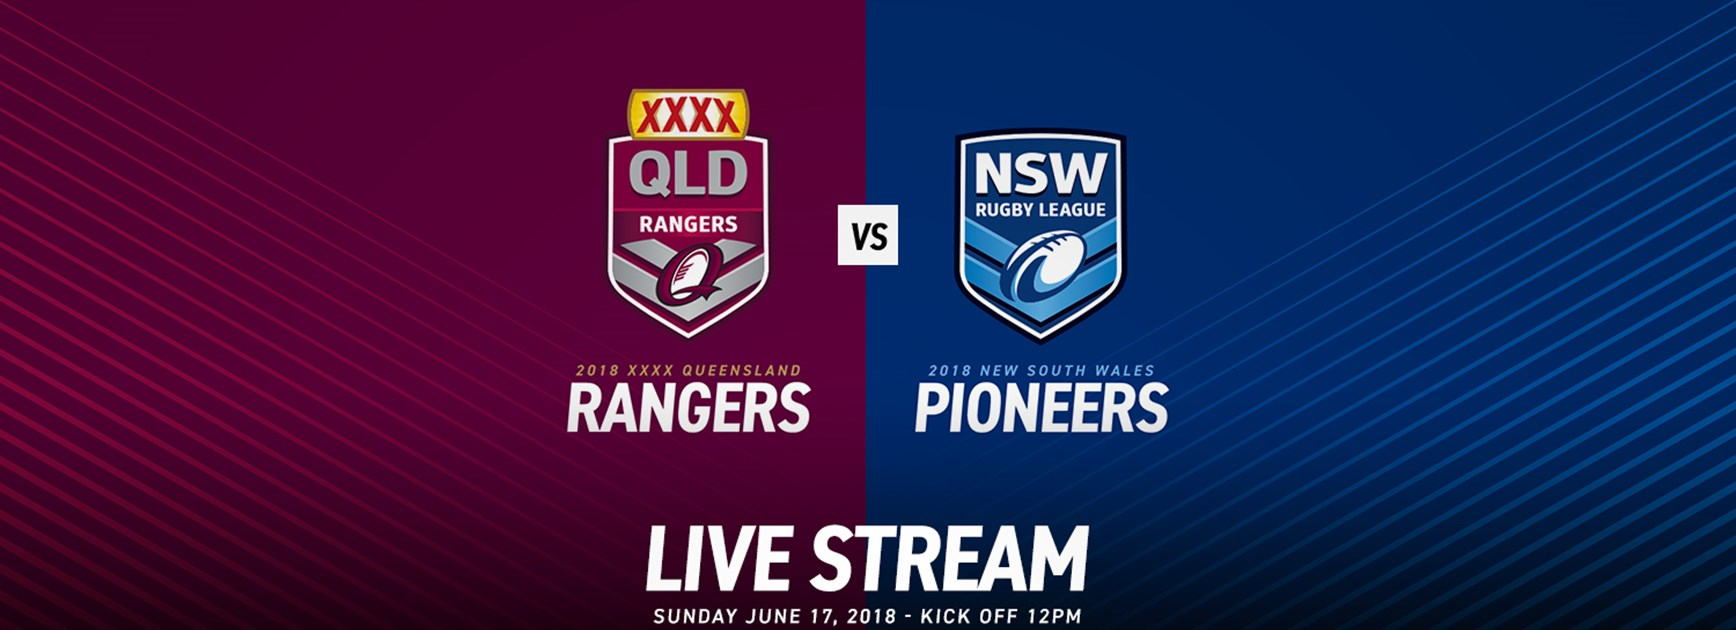 Live stream QLD Rangers V NSW Pioneers